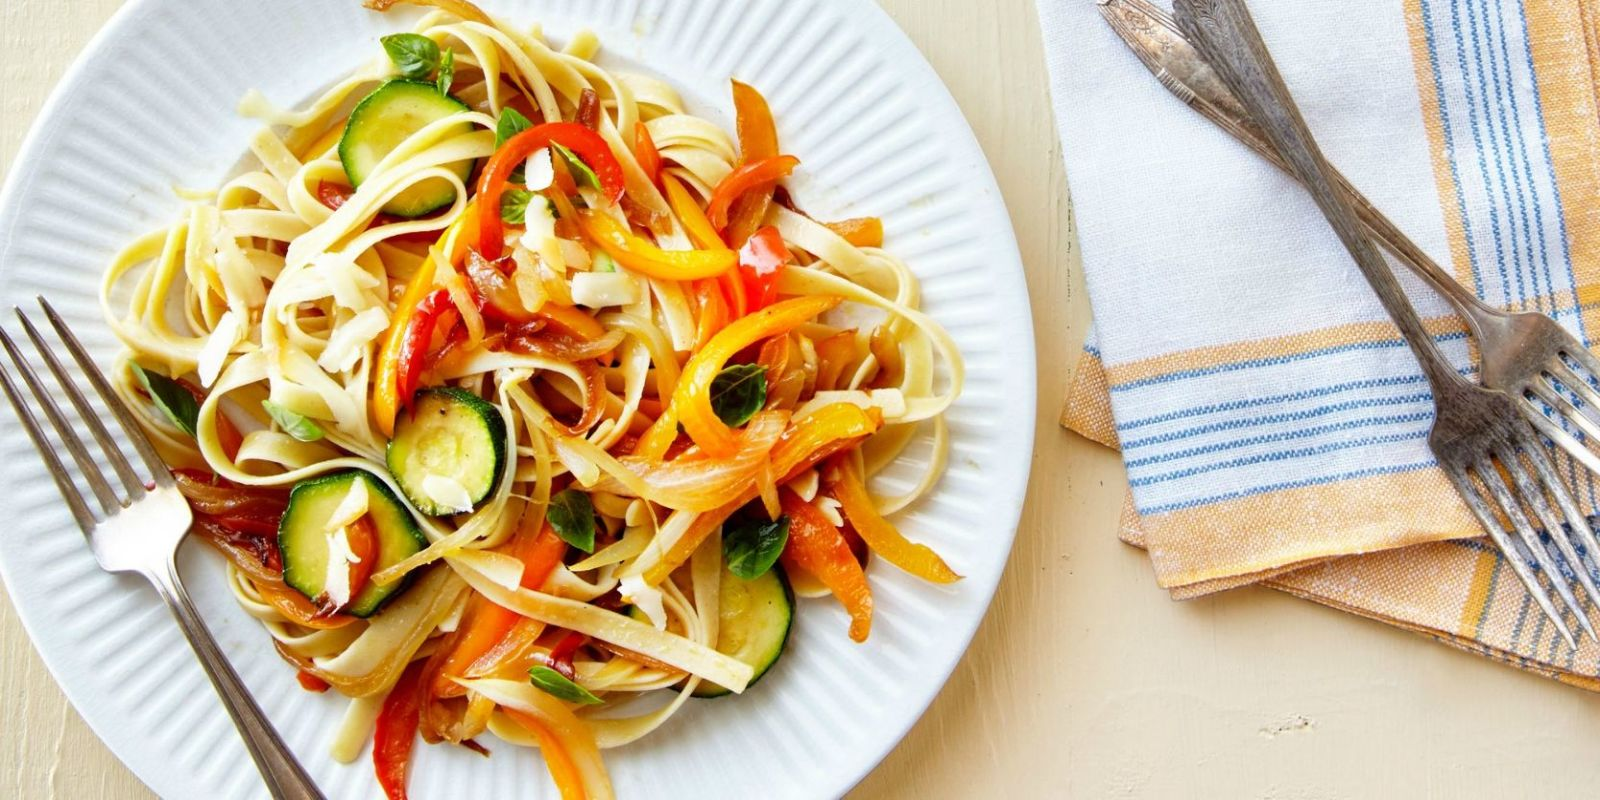 Pasta With Saut 233 Ed Peppers Zucchini And Smoked Mozzarella Recipe Countryliving Com